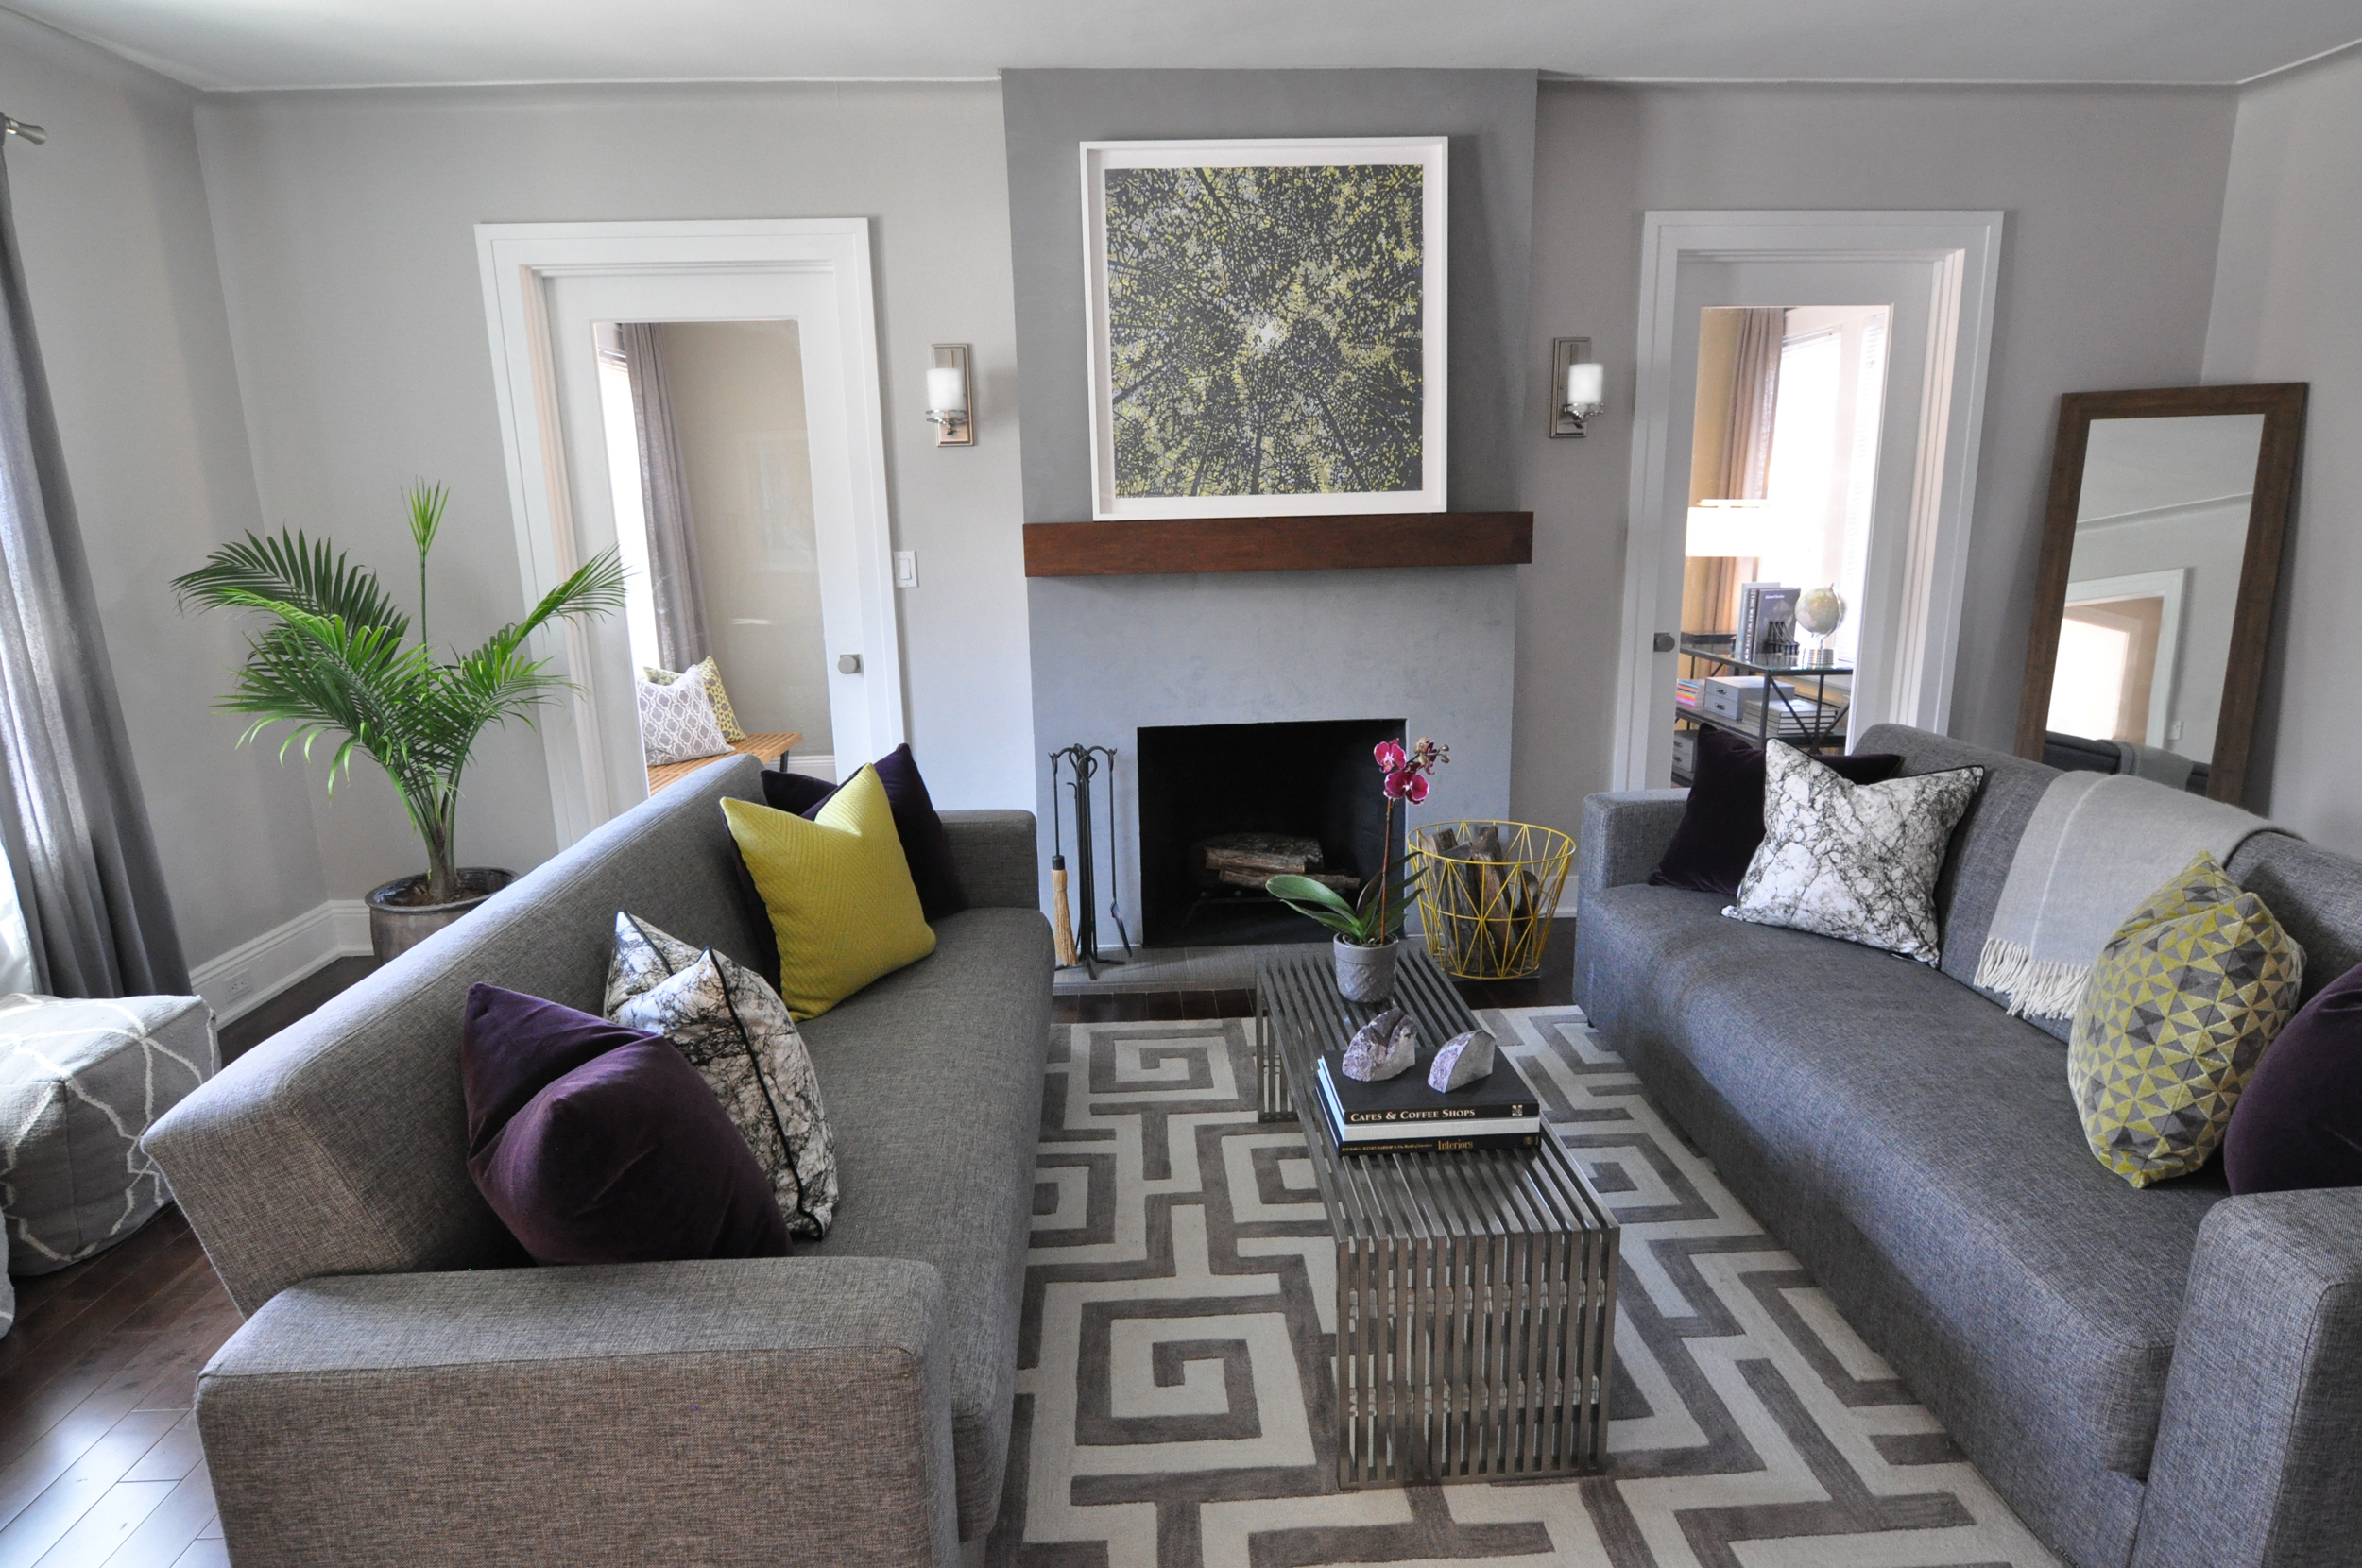 Kim Mitchell Production Designer_HGTV_Buying and Selling with The Property Brothers_Season 3_Episode 315_After Living Room Design_Living Room Reveal_Living Room Fireplace_Kenise Barnes Fine Art_Kontrast_Churchill.jpg